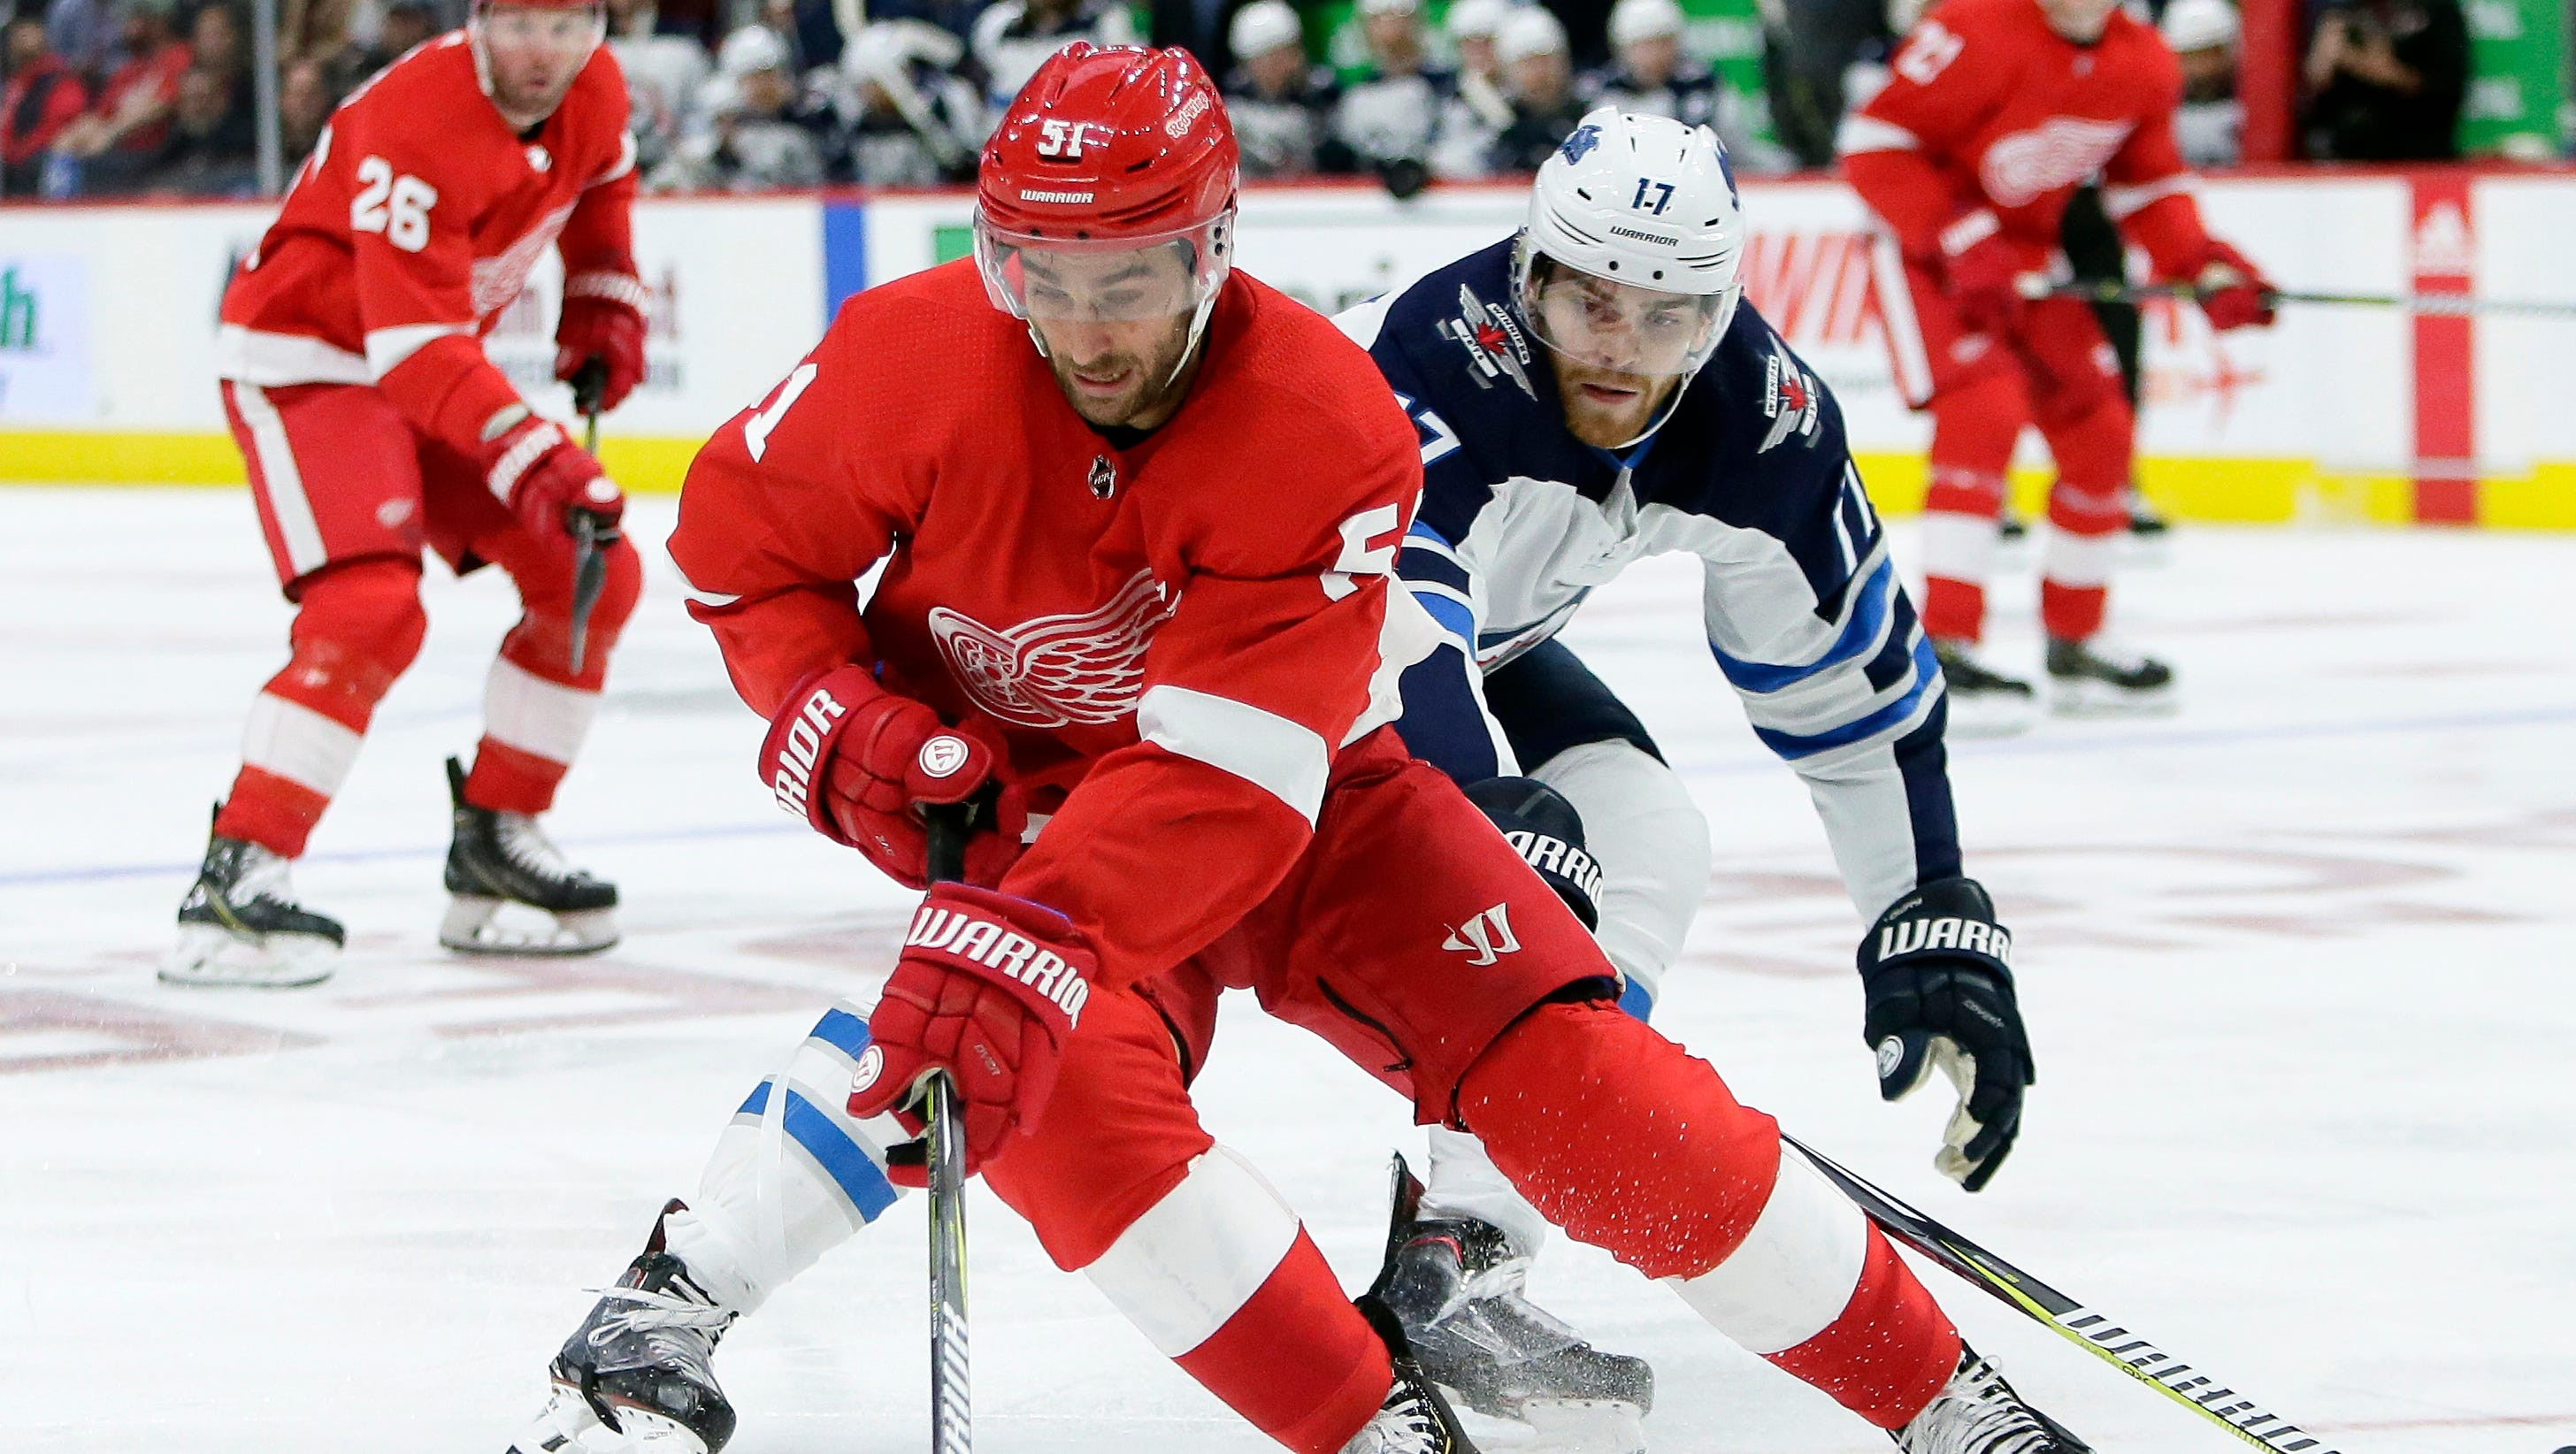 Red Wings' Frans Nielsen anxious to play, but understands need to be careful